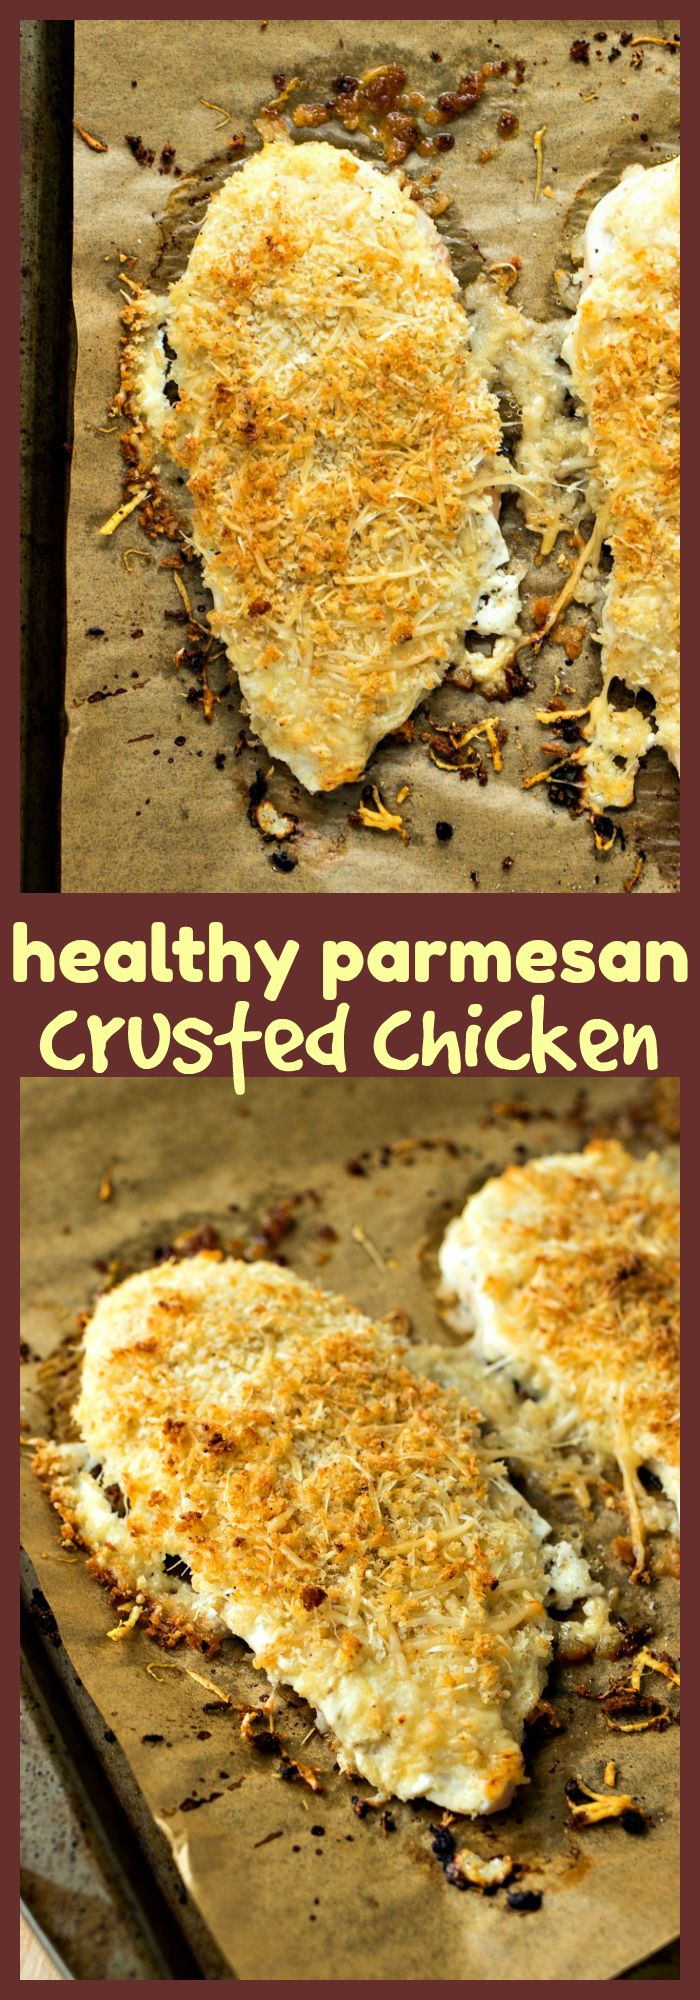 Healthy Parmesan Crusted Chicken